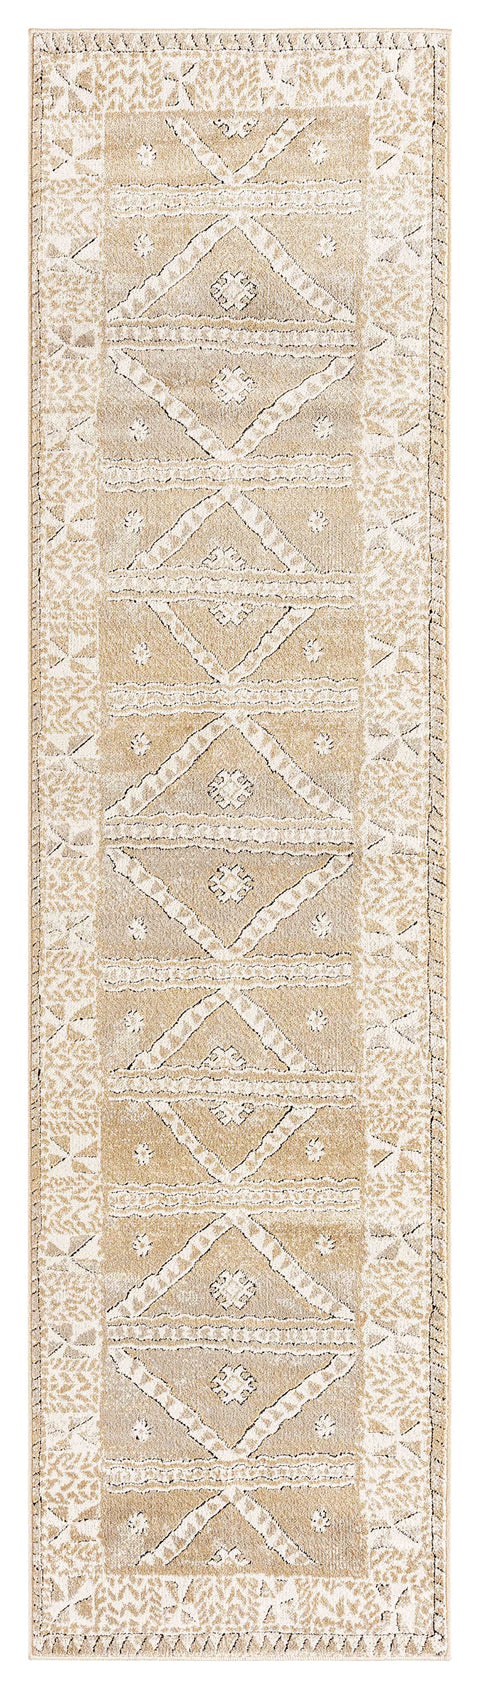 Moema Beige and Grey Transitional Tribal Runner Rug